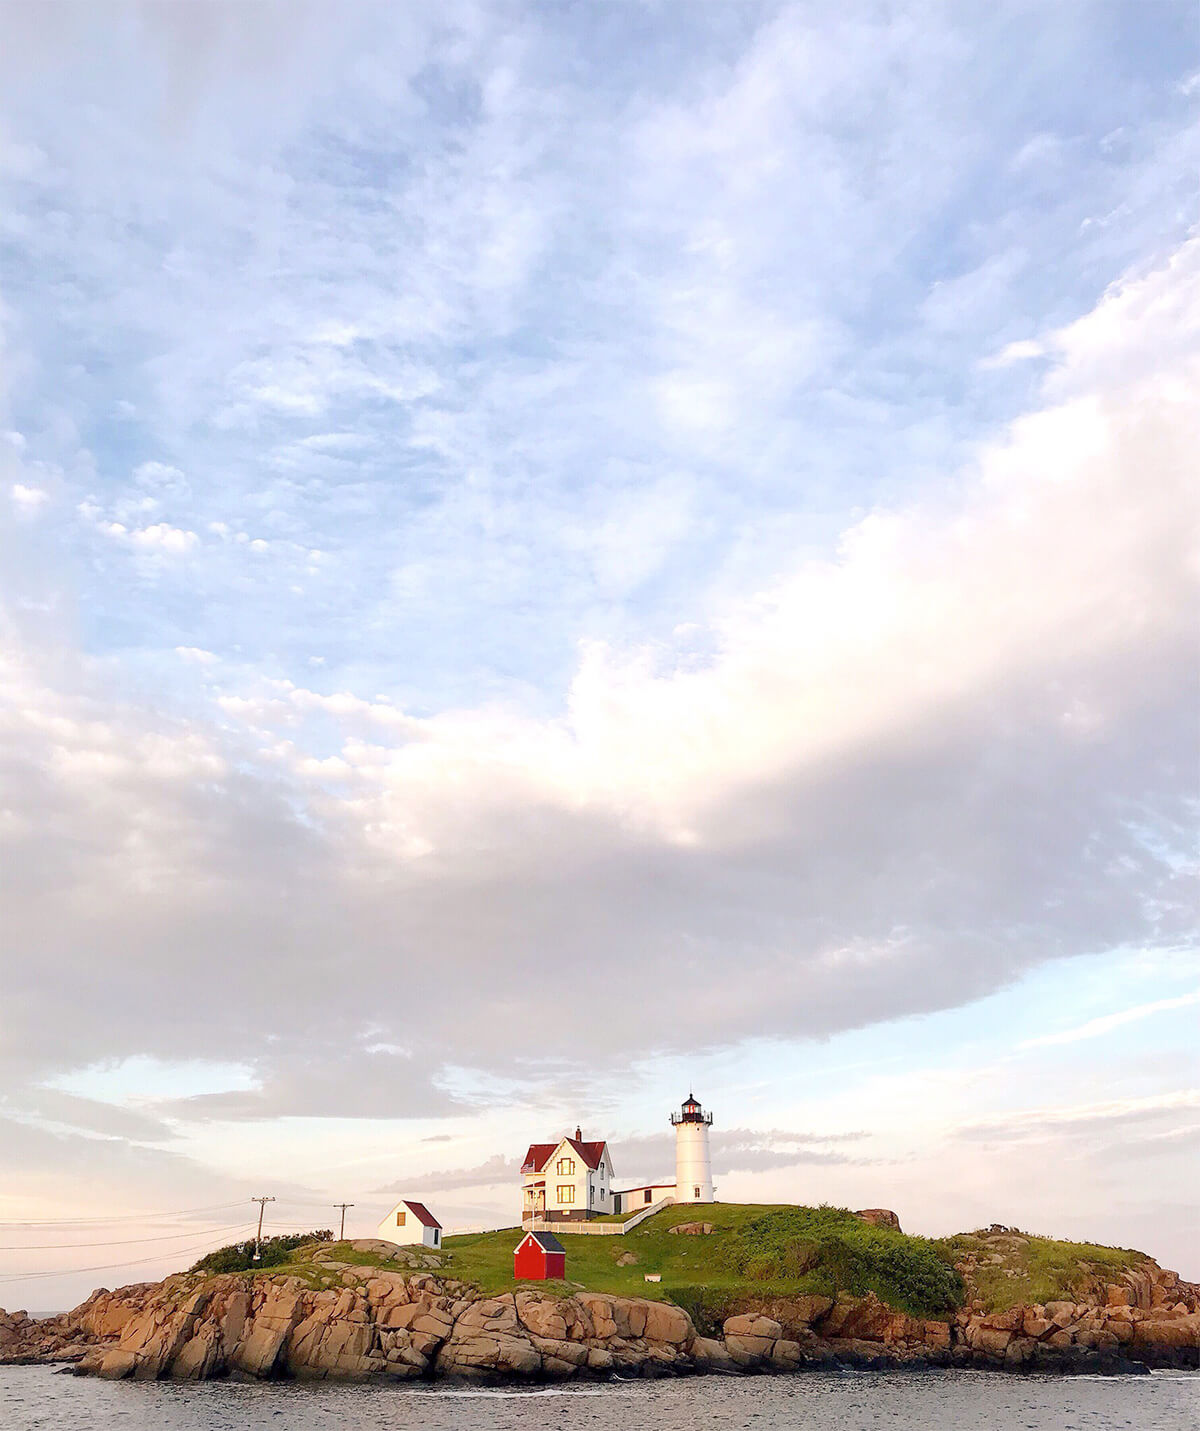 Photo of the Nubble lighthouse in York, Maine